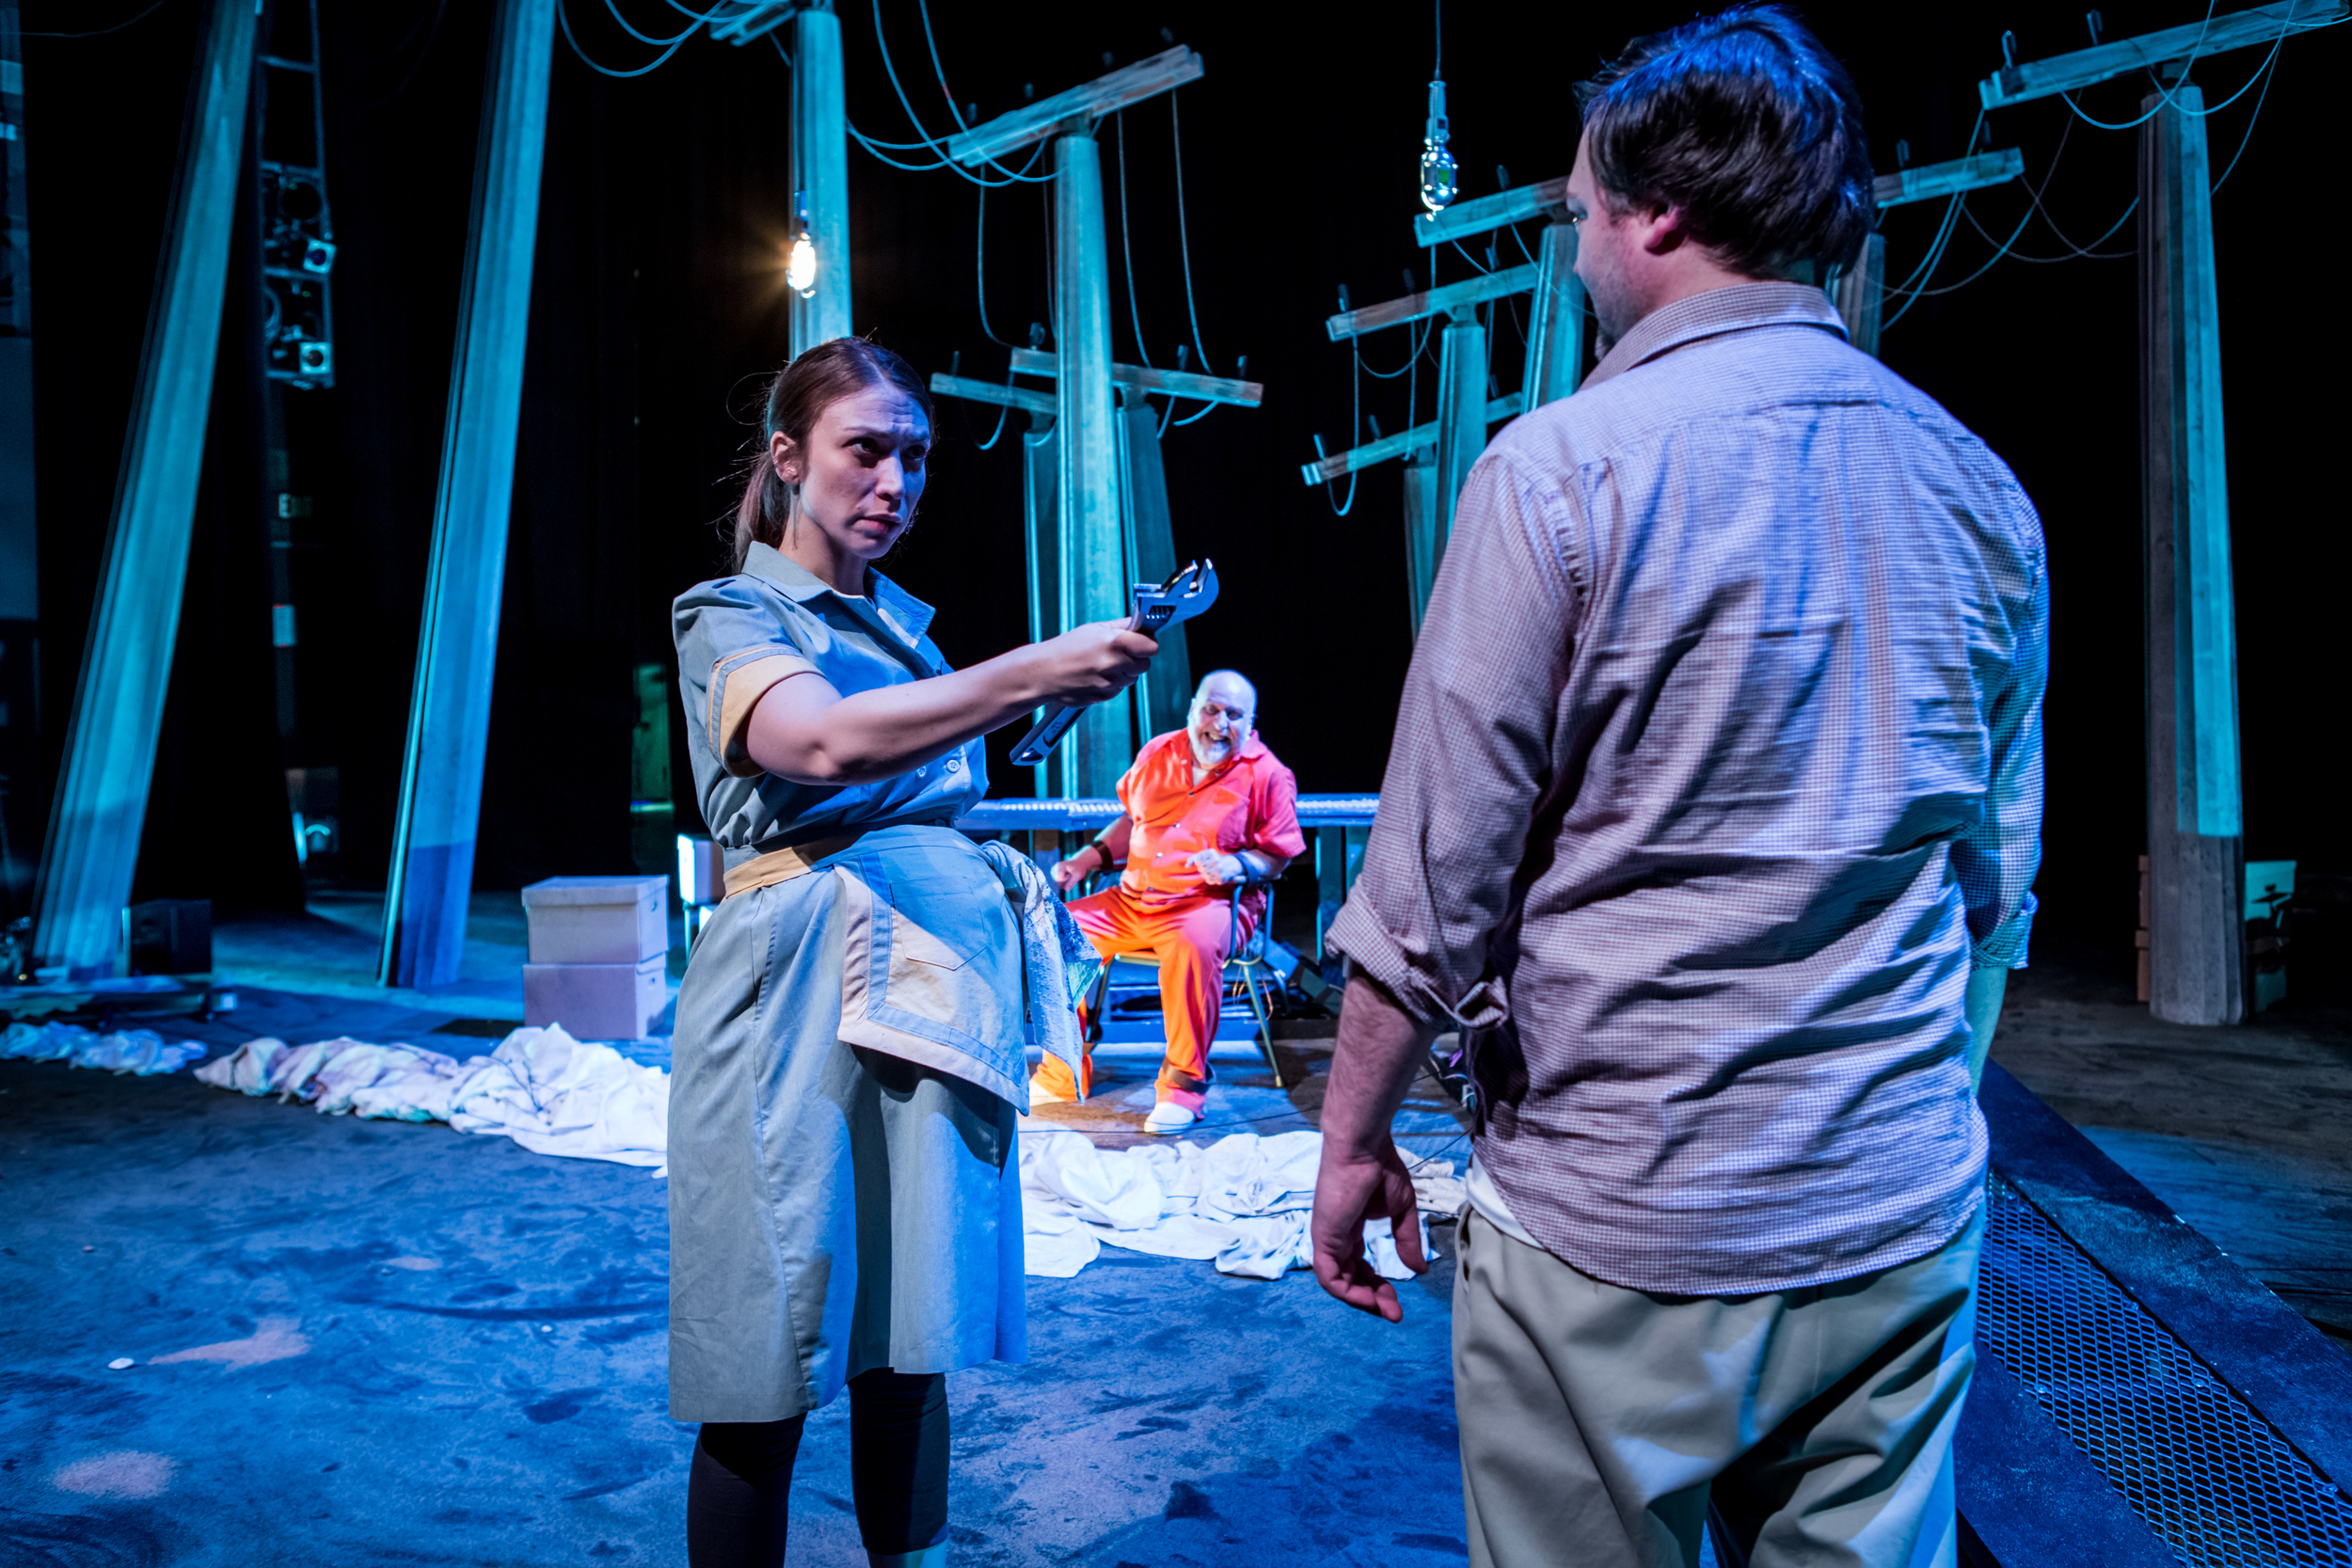 Laws of Thermodynamics - Production Photos - 20150215 - 0034.jpg